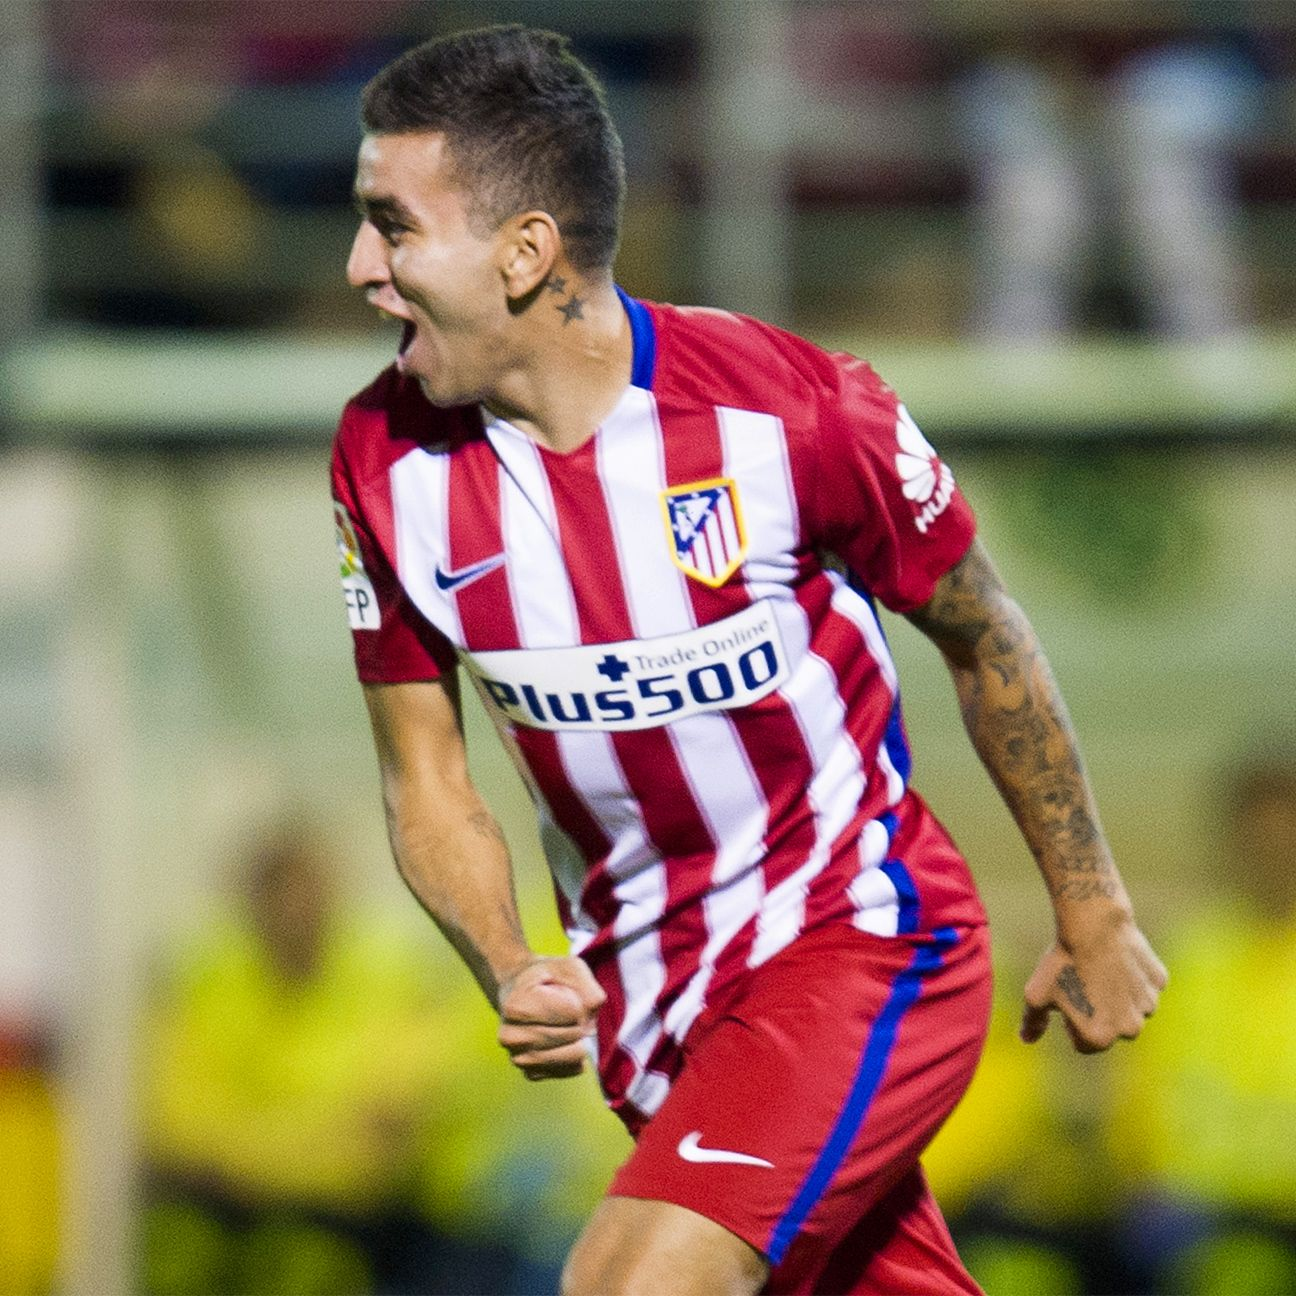 Angel Correa's slick movement against Eibar on Saturday helped Atletico Madrid pick up three points.